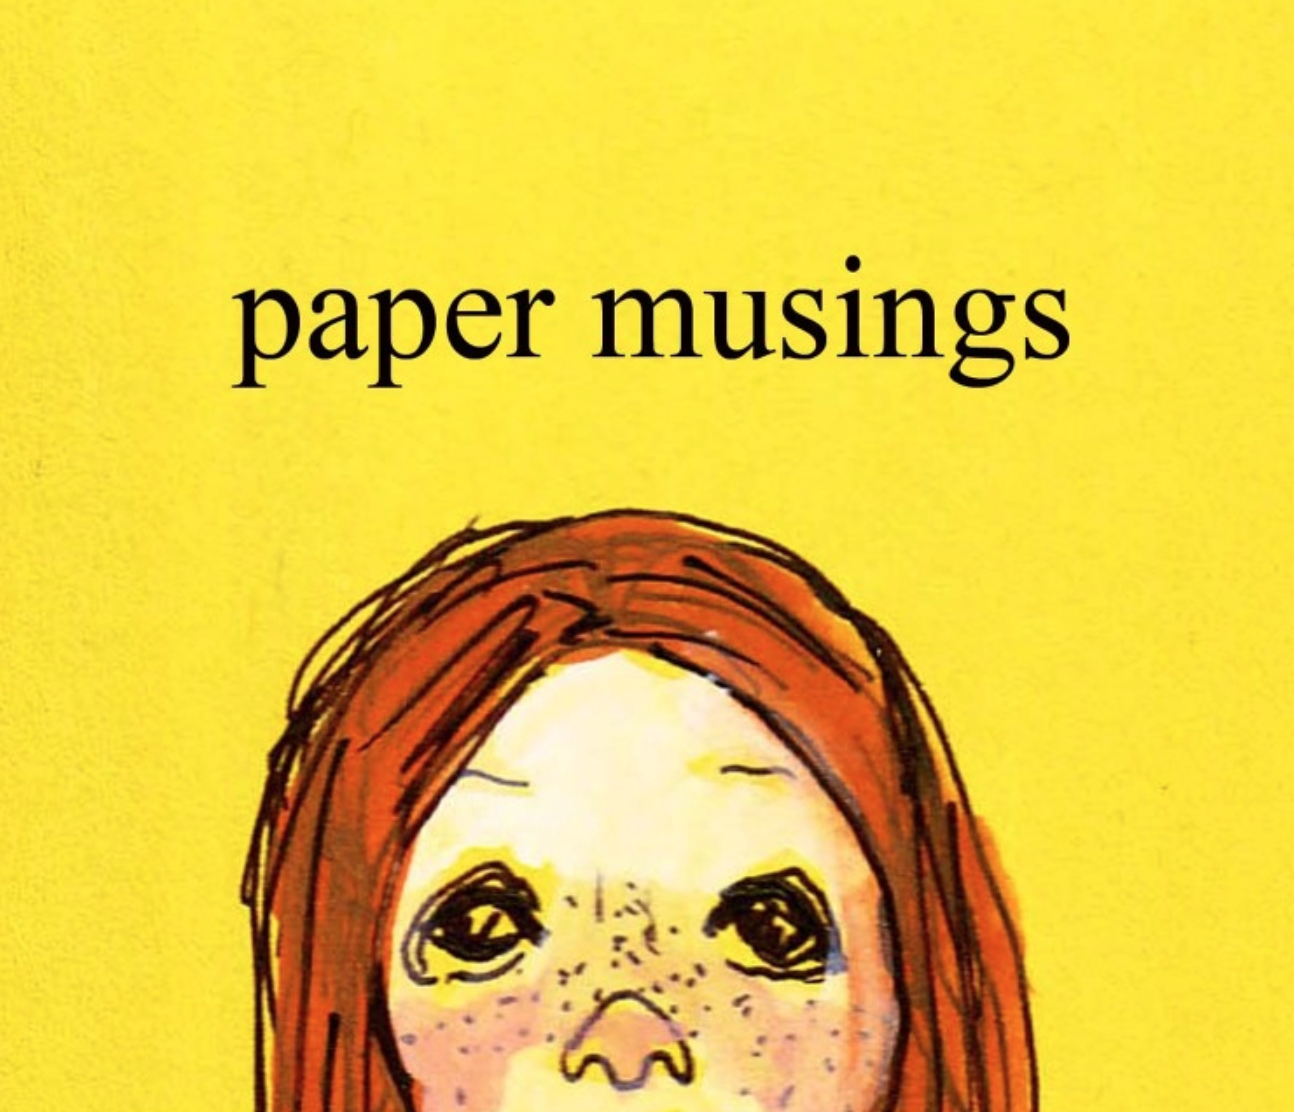 Paper Musings on Etsy